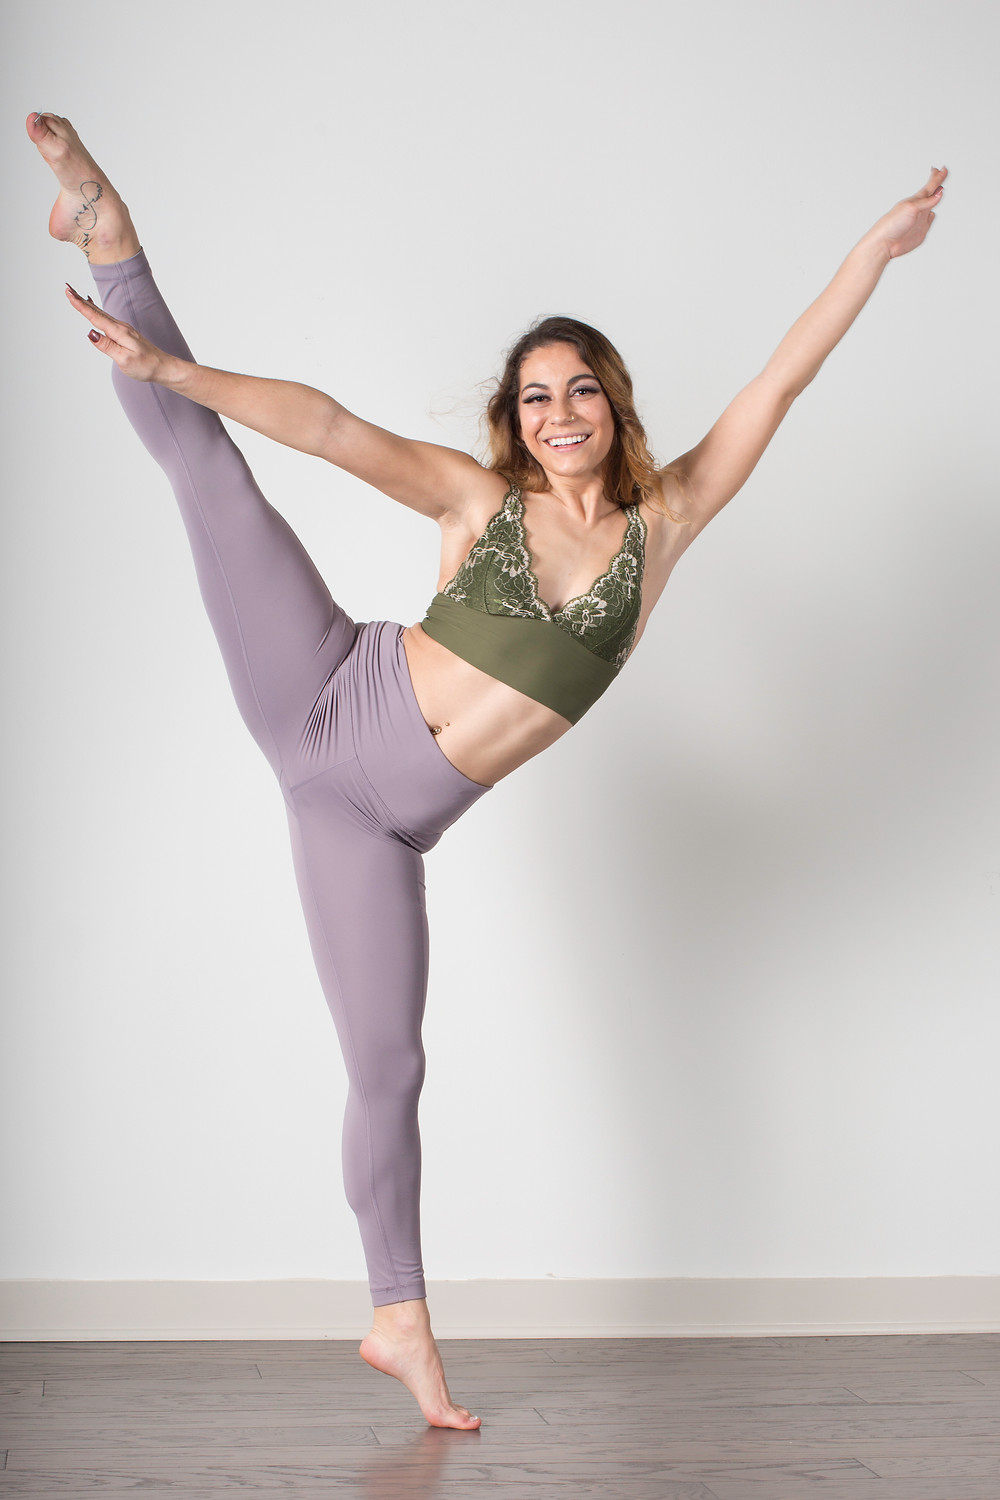 """A woman is in front of a white wall wearing a green sports bra and light purple yoga pants.  She is on one foot and the other leg is kicked nearly vertically and her hands up in a wide """"V"""" as she faces forward toward the camera."""